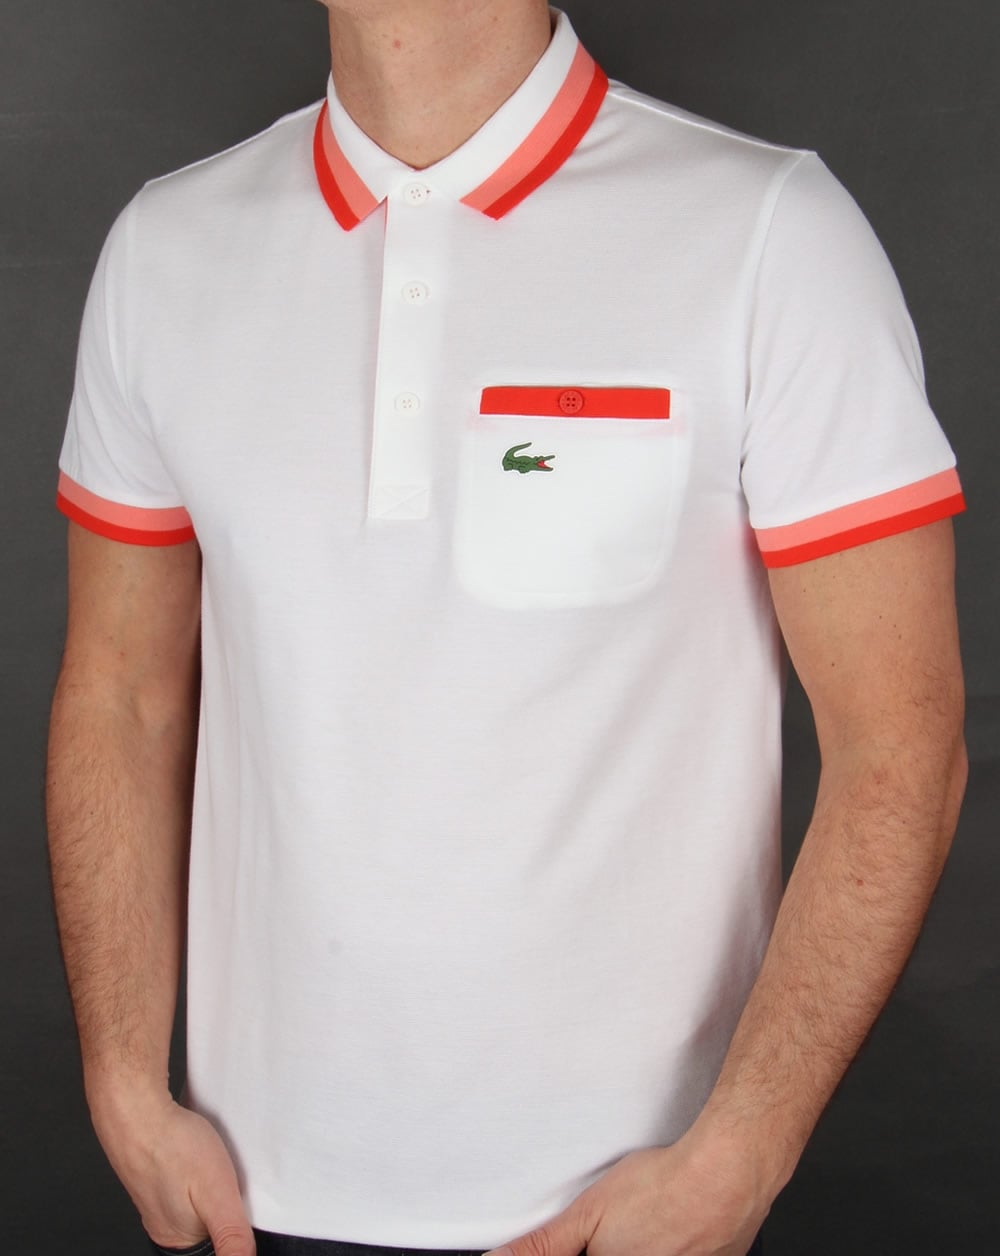 eb752dfe Lacoste Pocket Detail Polo Shirt White/Red